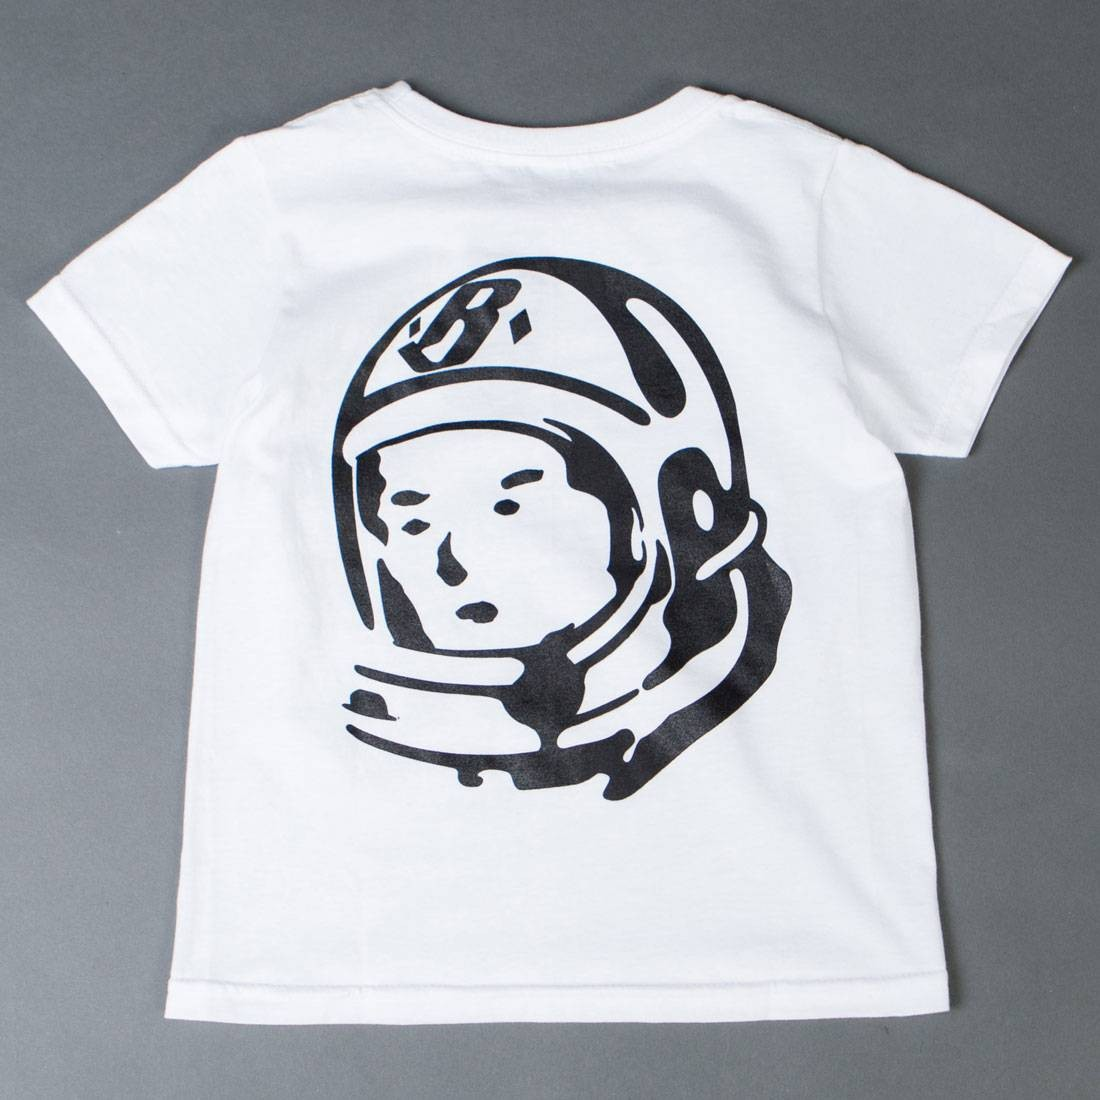 Billionaire Boys Club Youth Arch Helmet Tee (white)